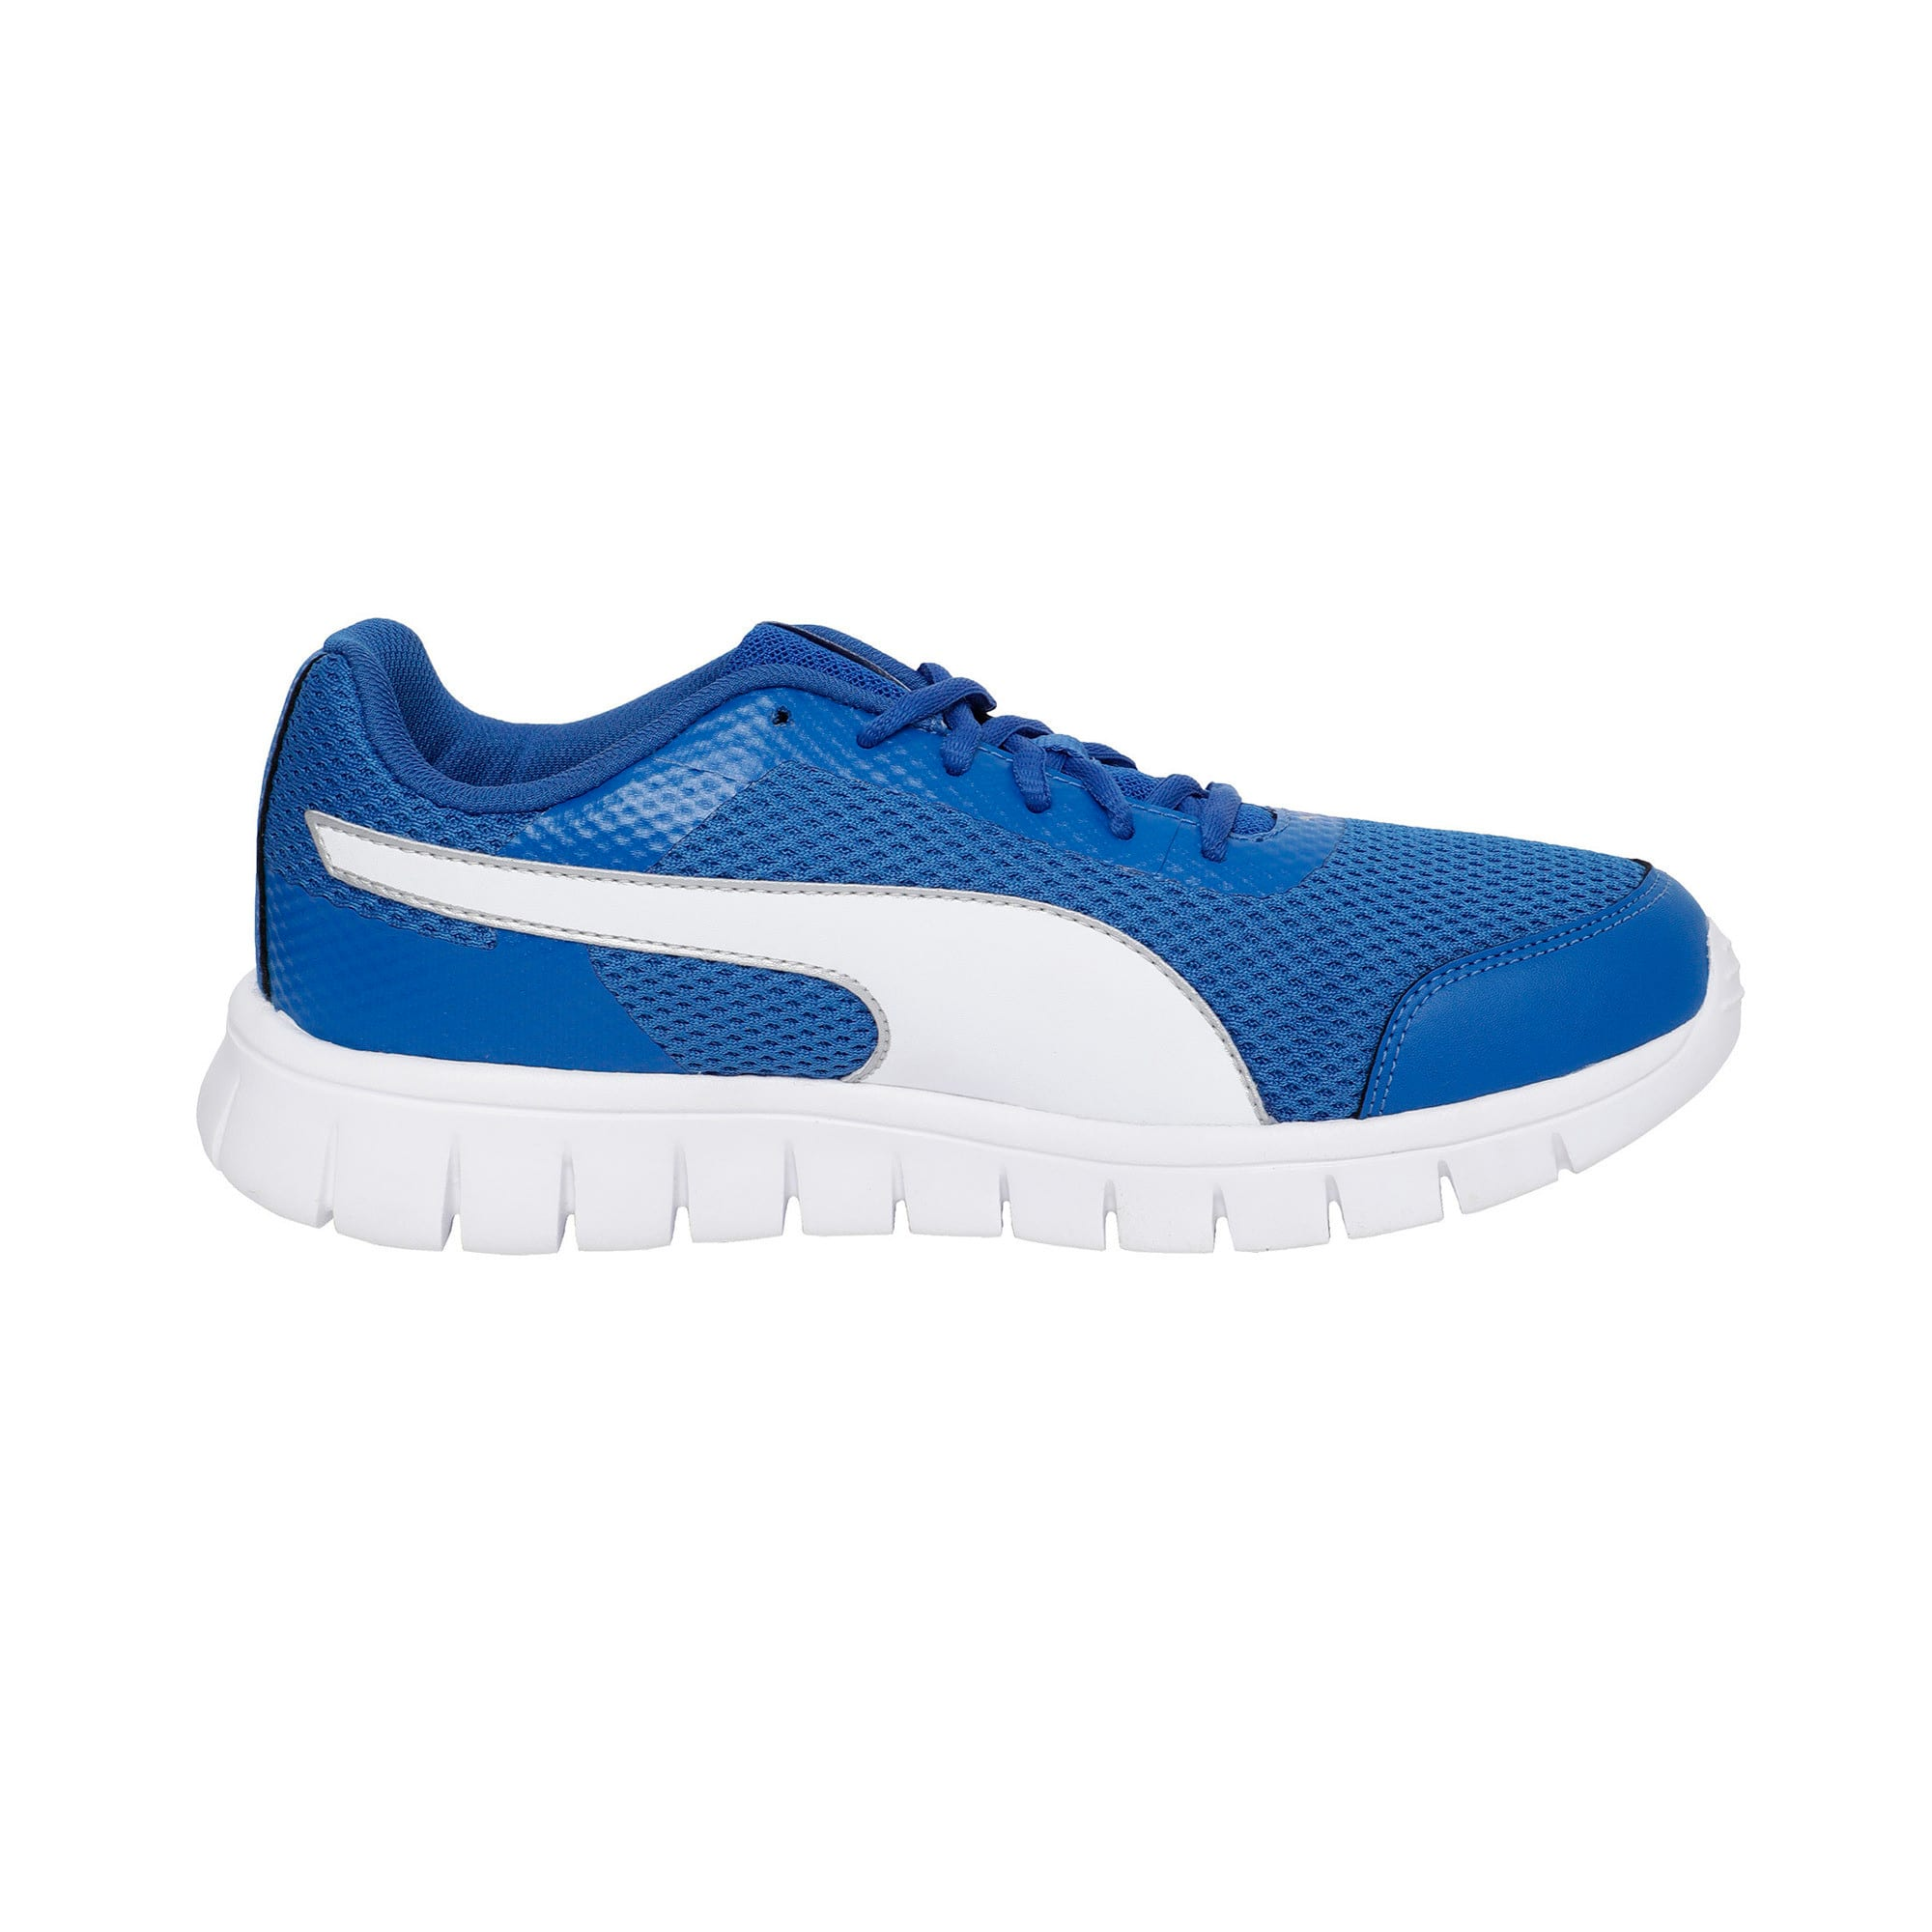 Thumbnail 5 of PUMA Blur V2 IDP Puma Black-Puma Silver, Lapis Blue-Puma White, medium-IND